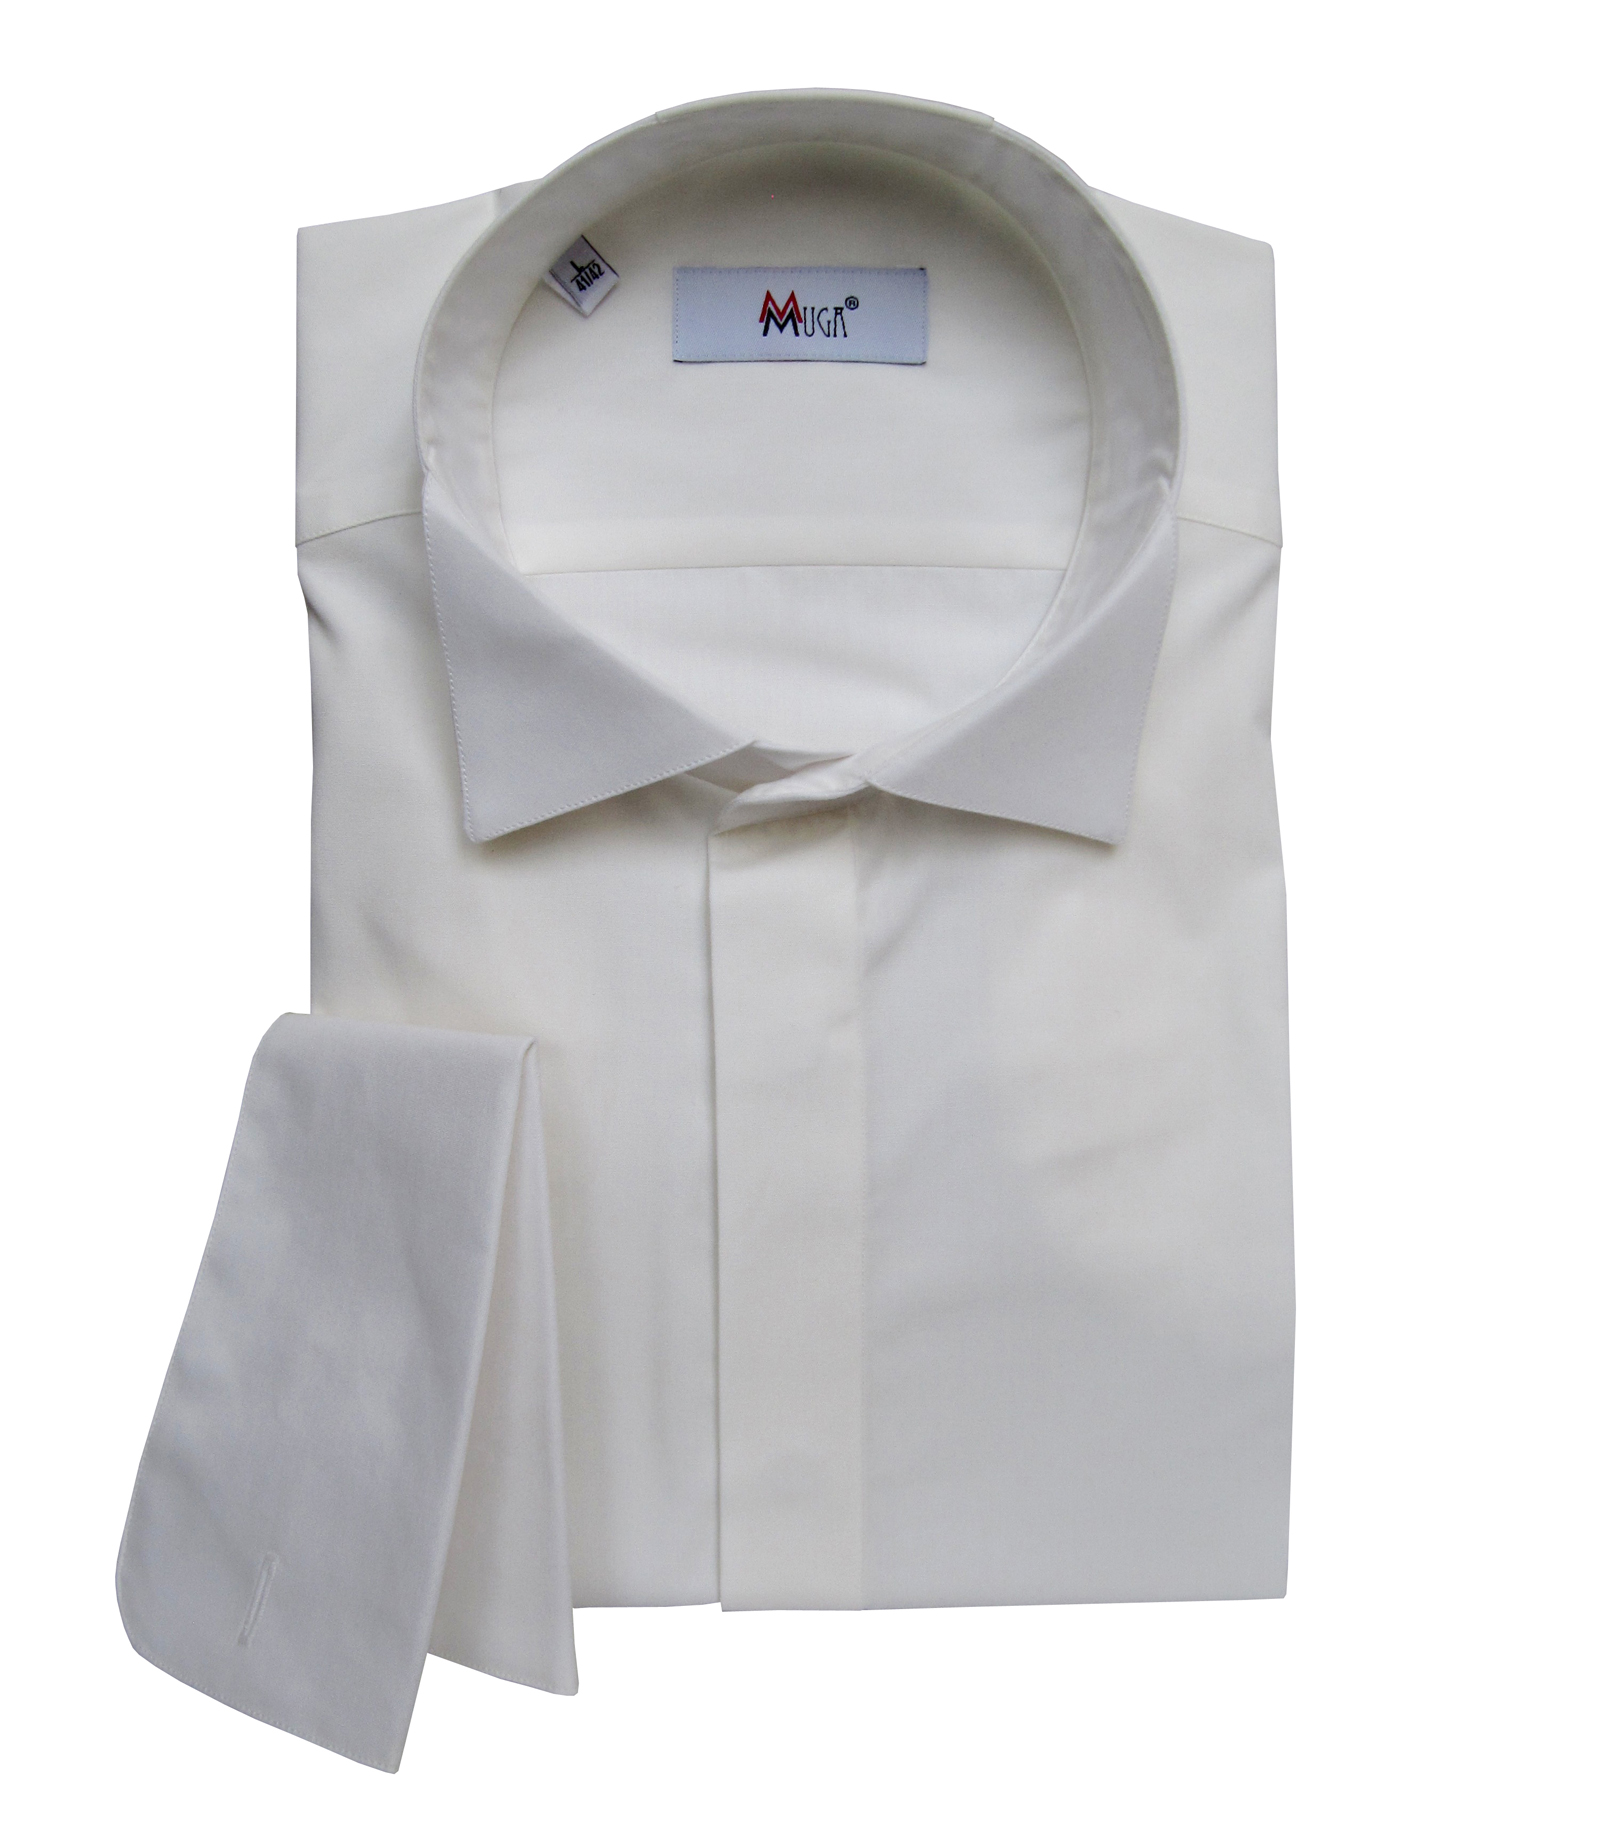 Muga mens french cuff dress shirt wedding clothing for Mens dress shirts french cuffs